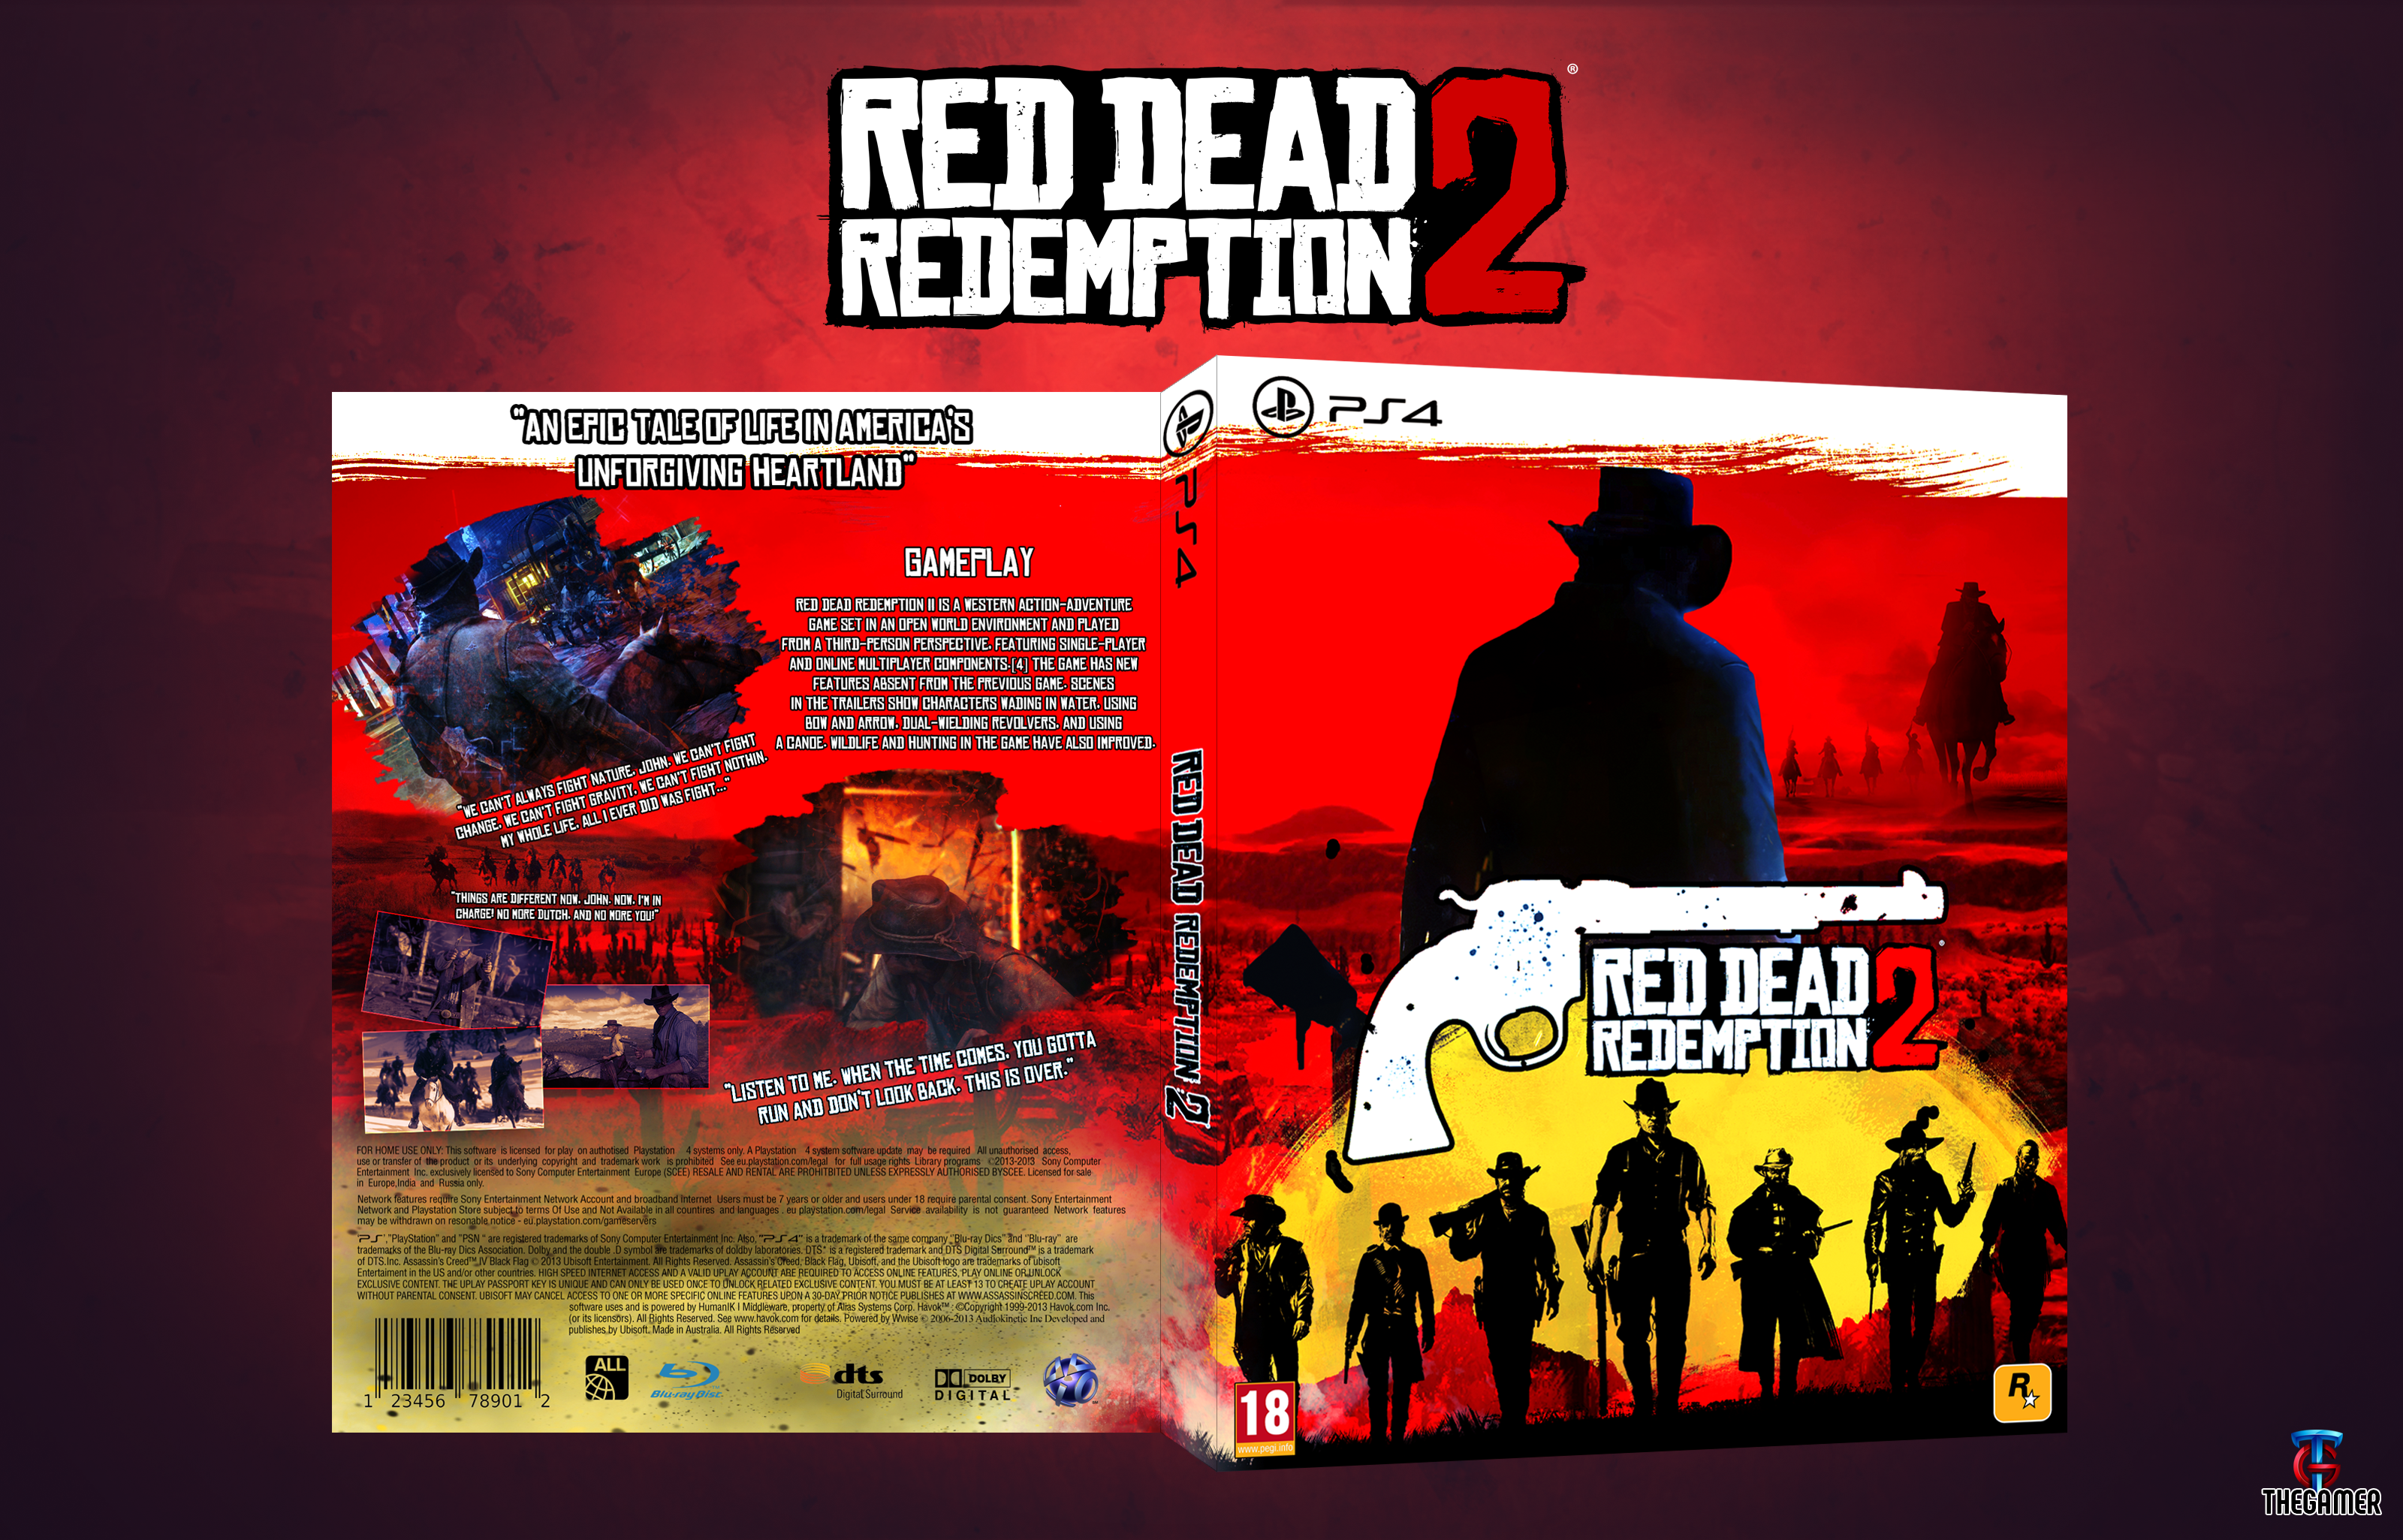 Red Dead Redemption 2 PlayStation 4 Box Art Cover by Thegamer